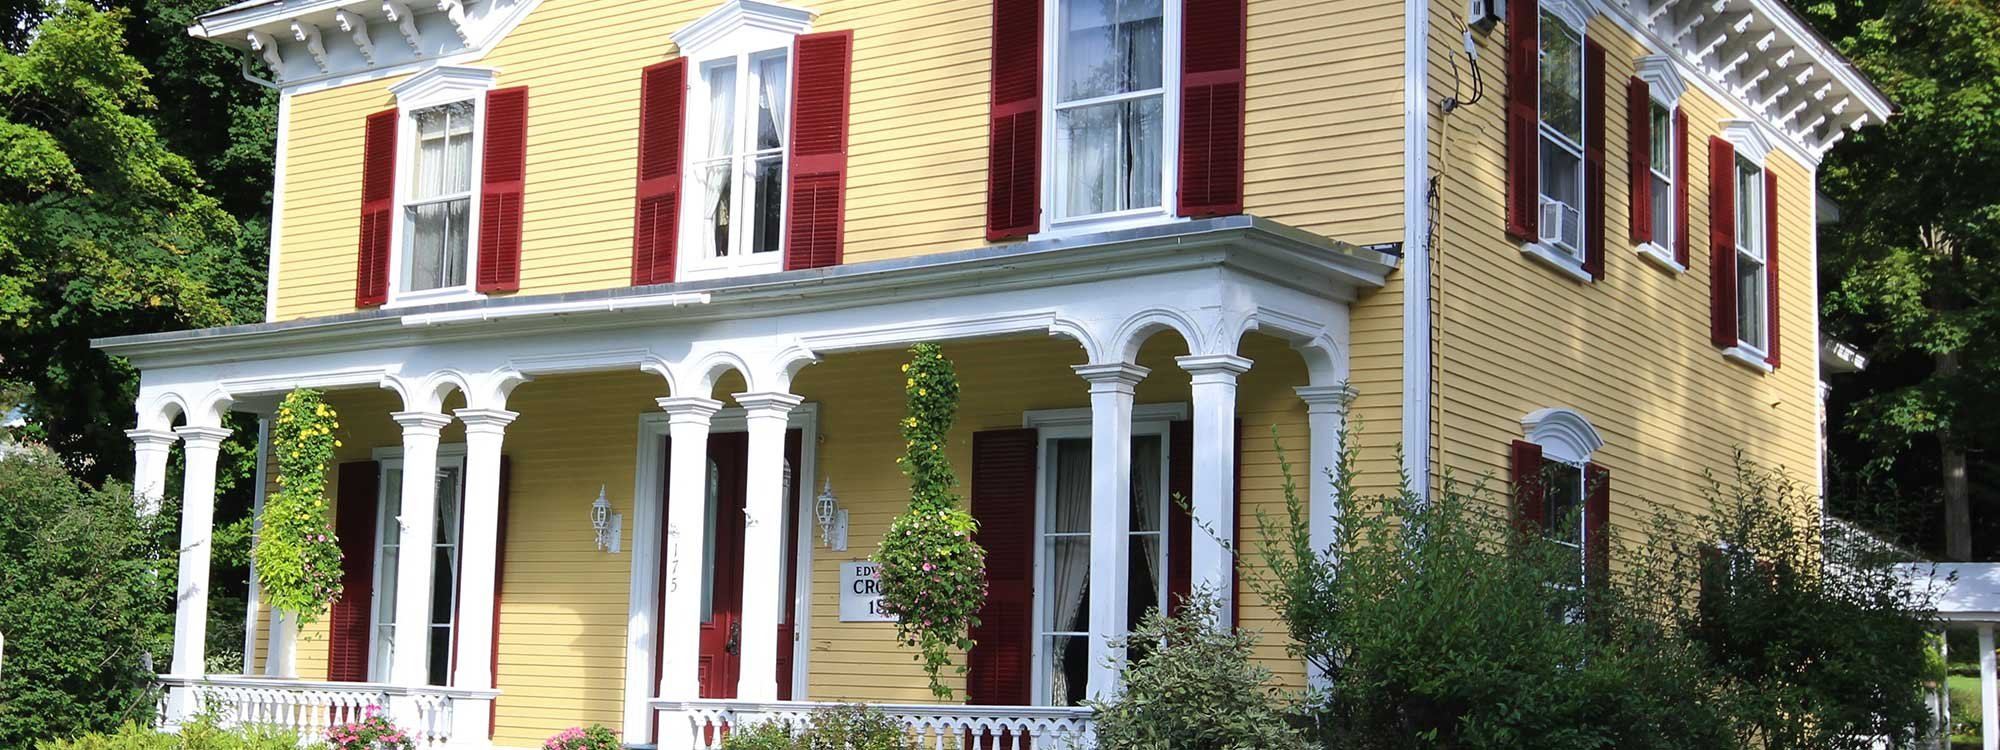 1868 Crosby House in Brattleboro, Vermont